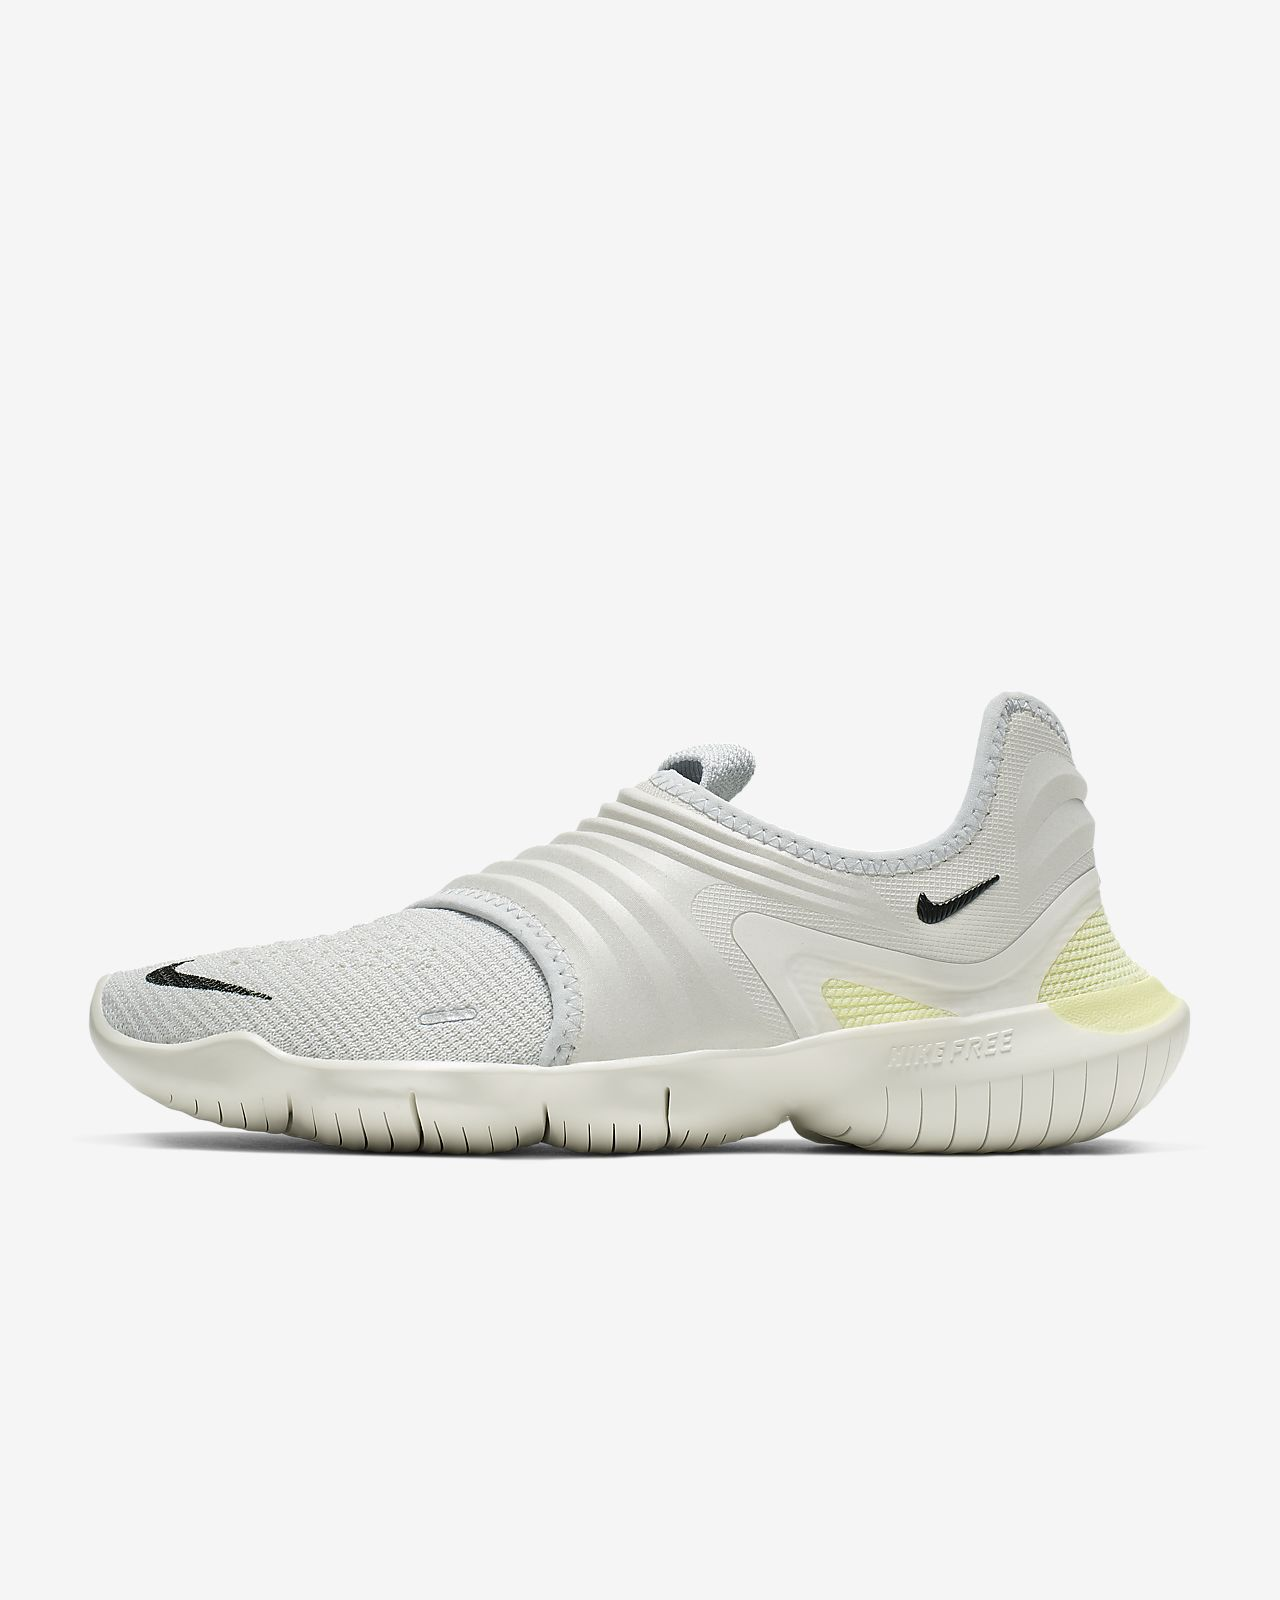 the best attitude 0bfd1 90354 ... Chaussure de running Nike Free RN Flyknit 3.0 pour Femme